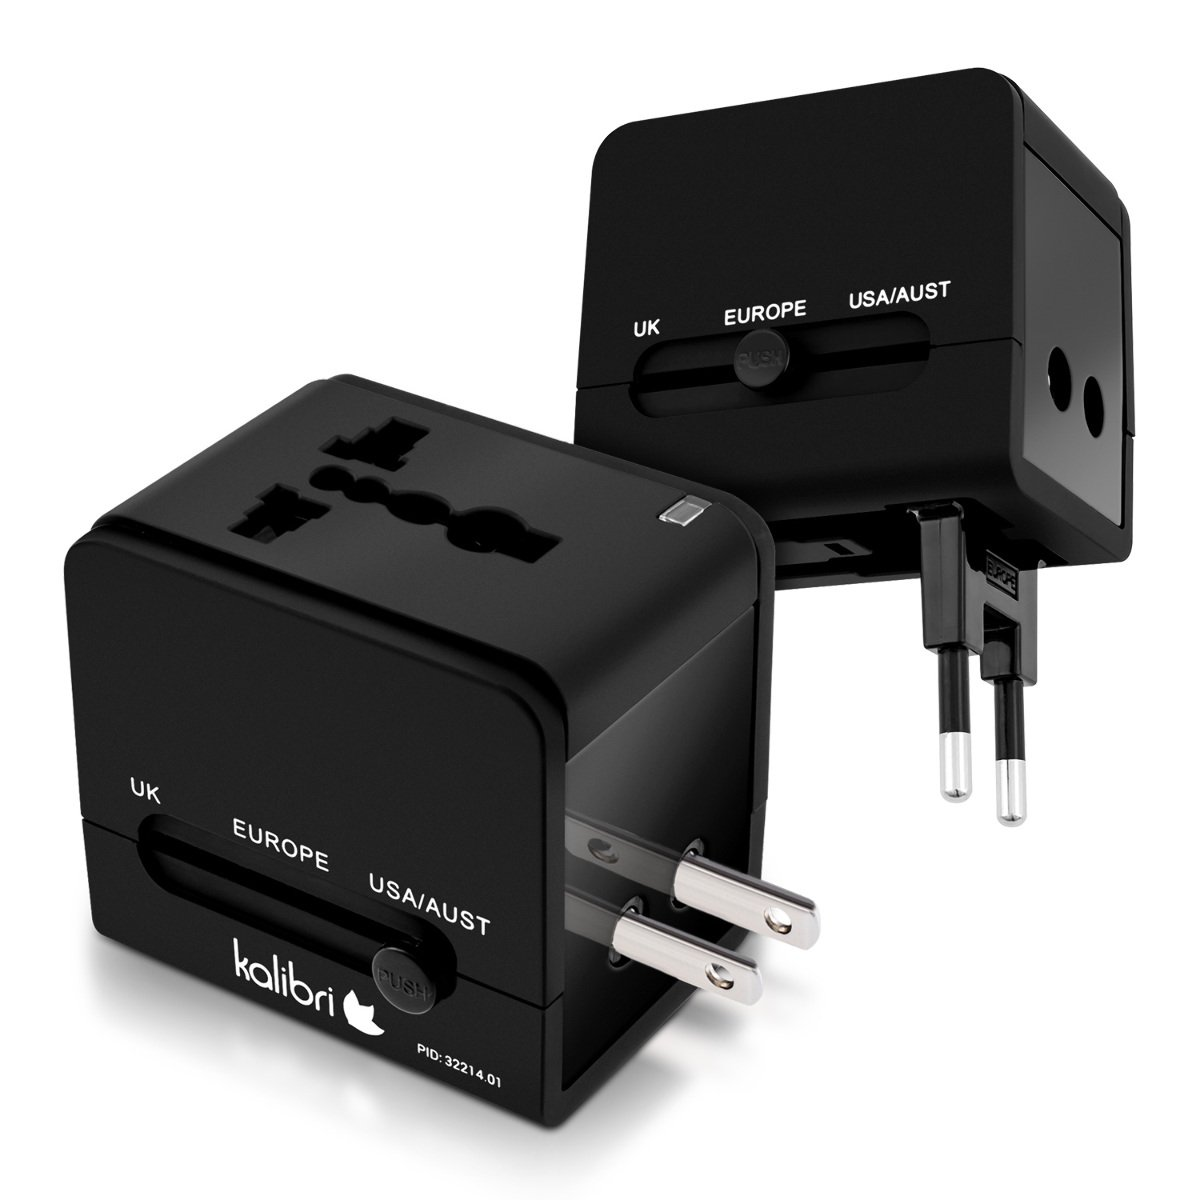 kalibri adattatore universale da viaggio all in one - converter presa corrente per 150 Paesi - travel adapter con 2 porte USB - nero KW-Commerce 32214.01_m000133